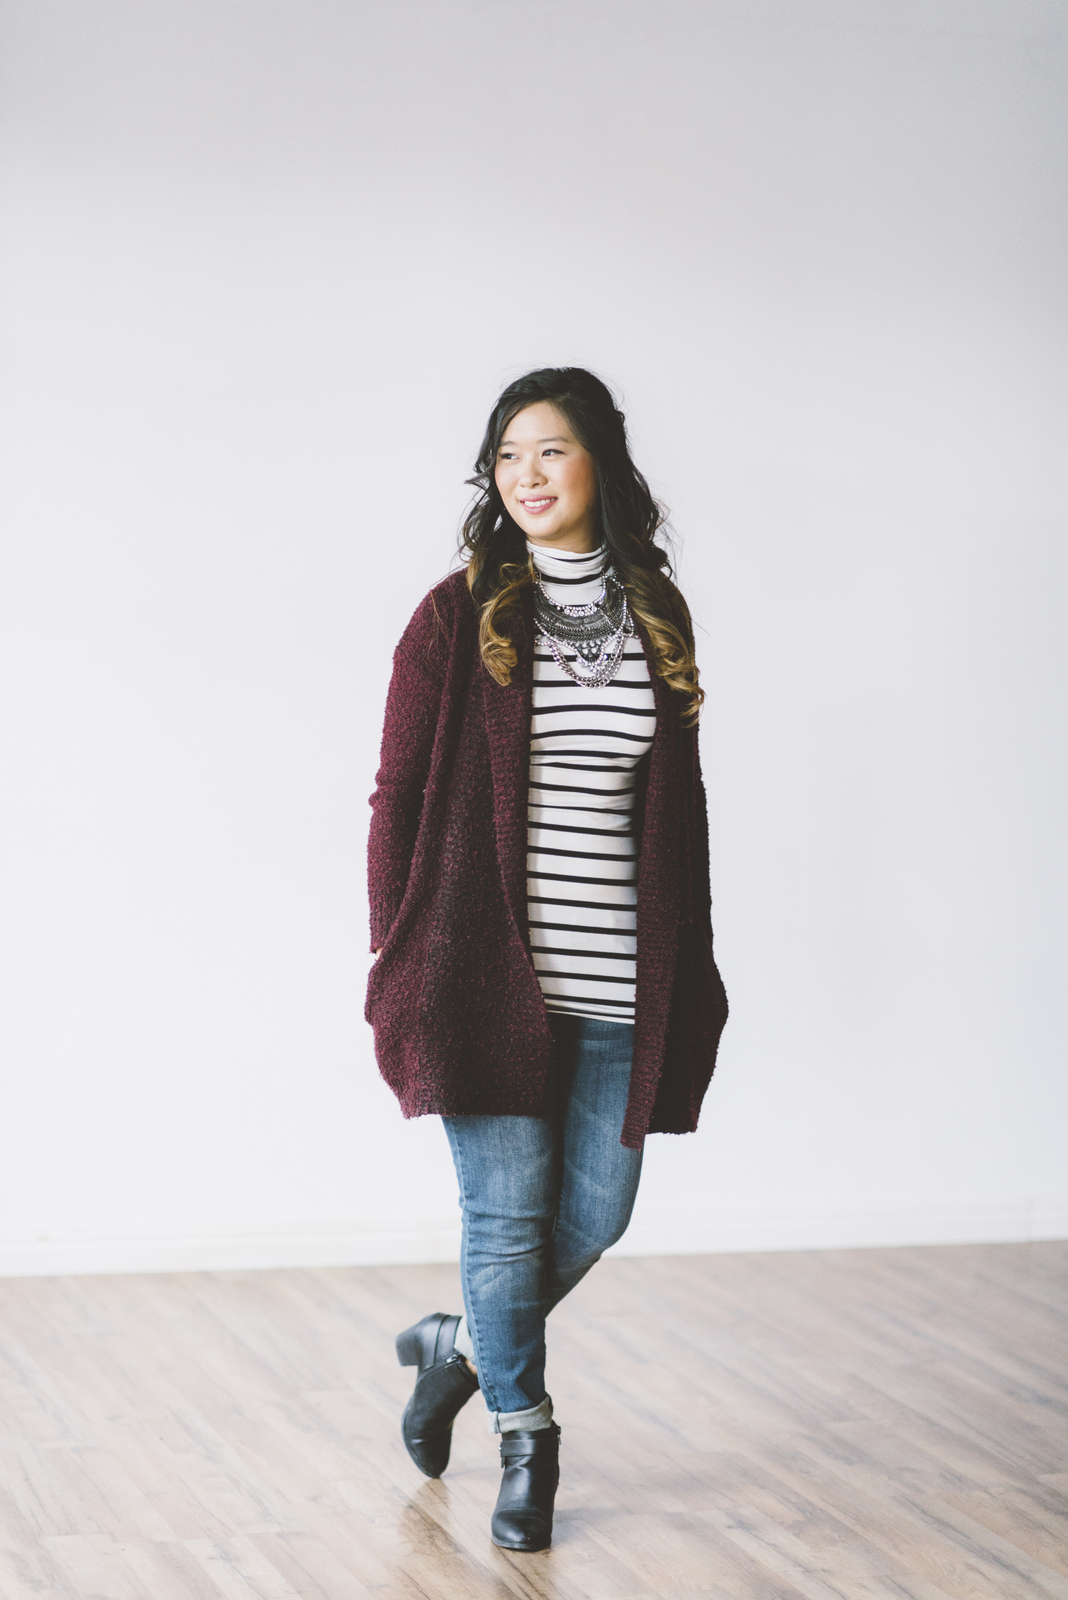 How to style a striped tee